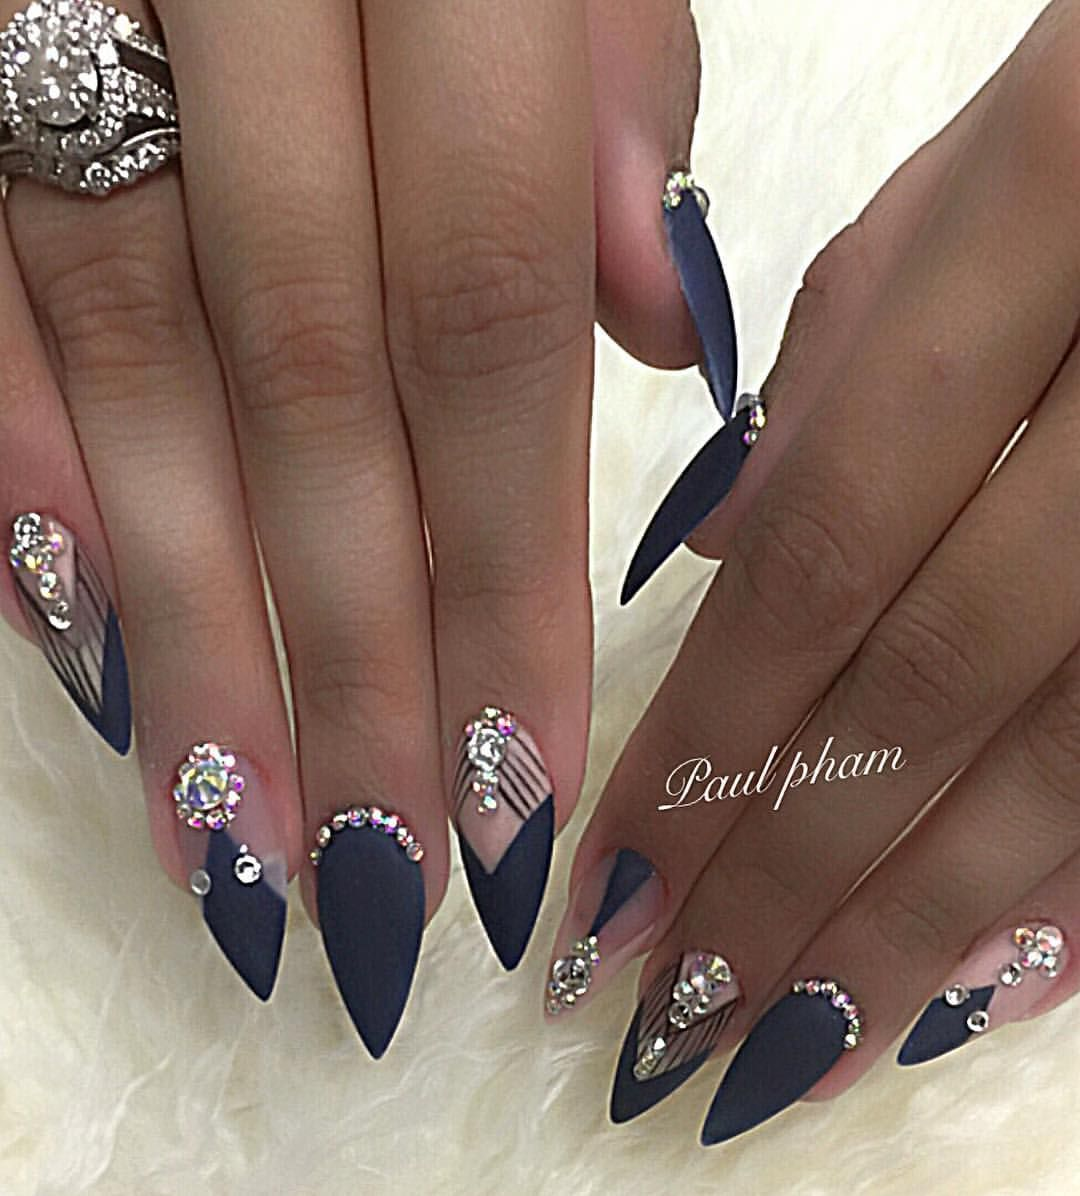 152 Me Gusta 1 Comentarios Best Beauty Nails And Spa Nailsbypaul En Instagram Albuquerque Newmexico 505 Nail Designs Bling Nails Pretty Nails